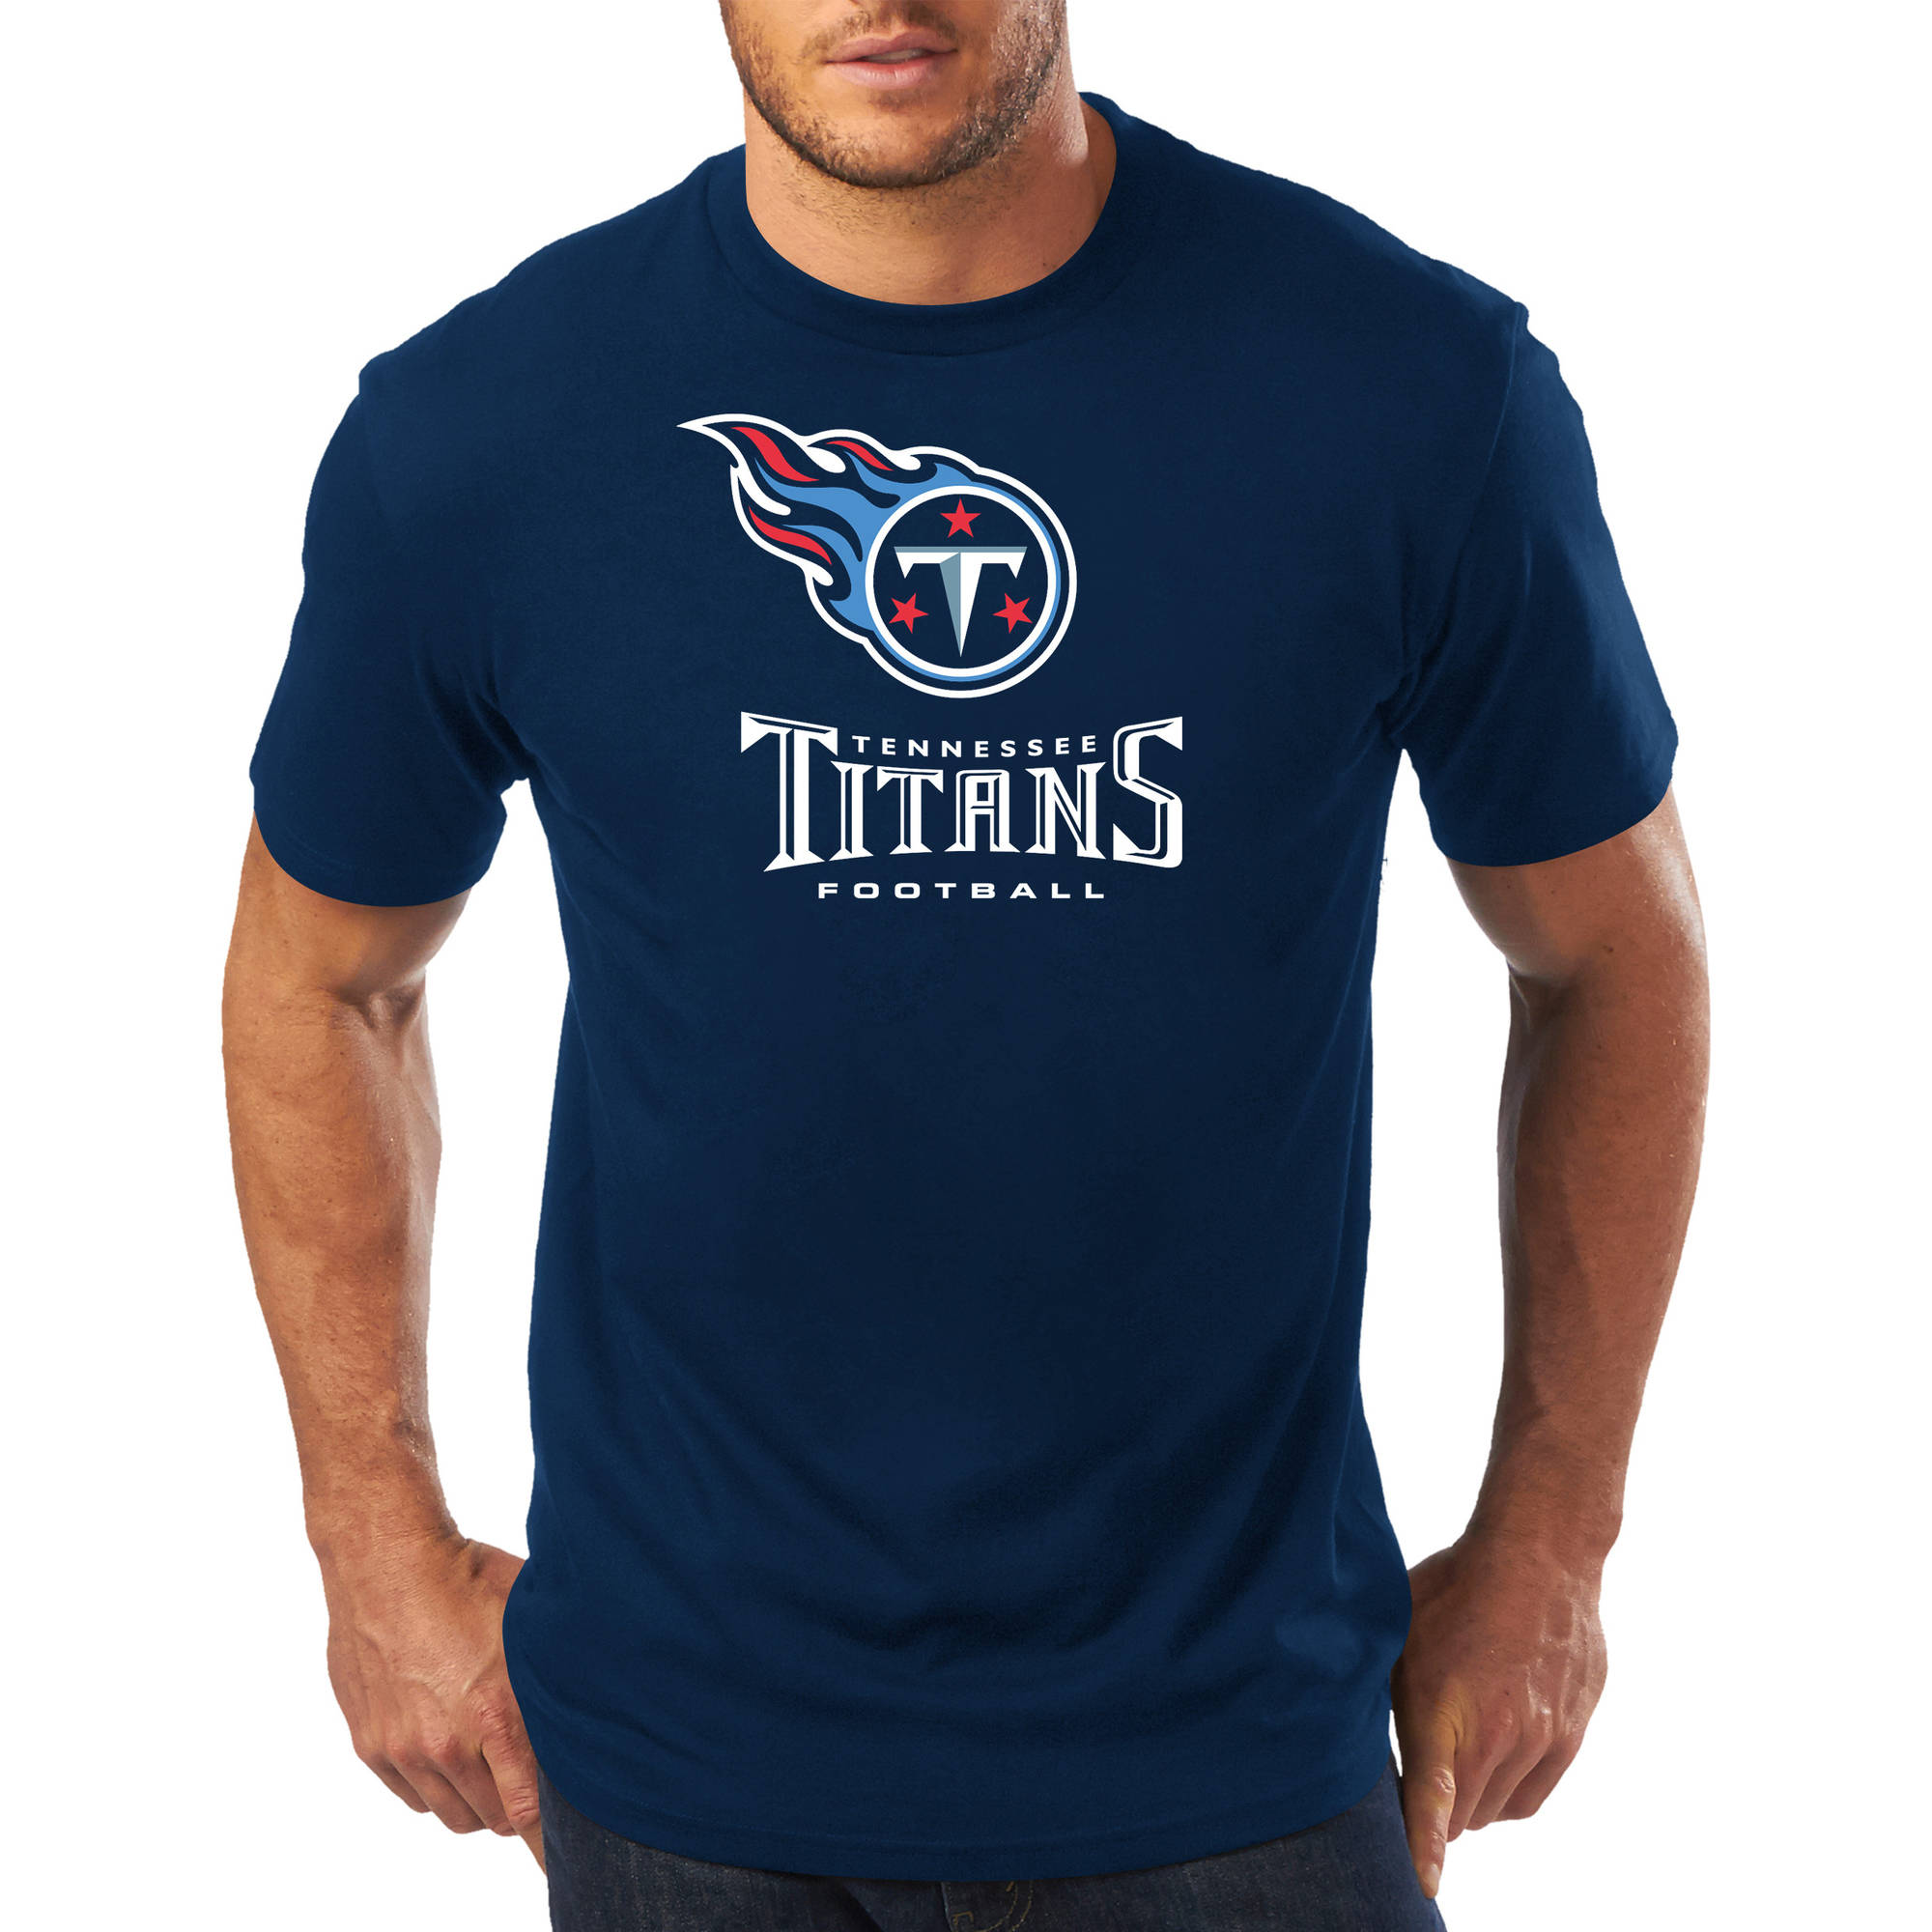 Big Men's NFL Tennessee Titans Short Sleeve Tee